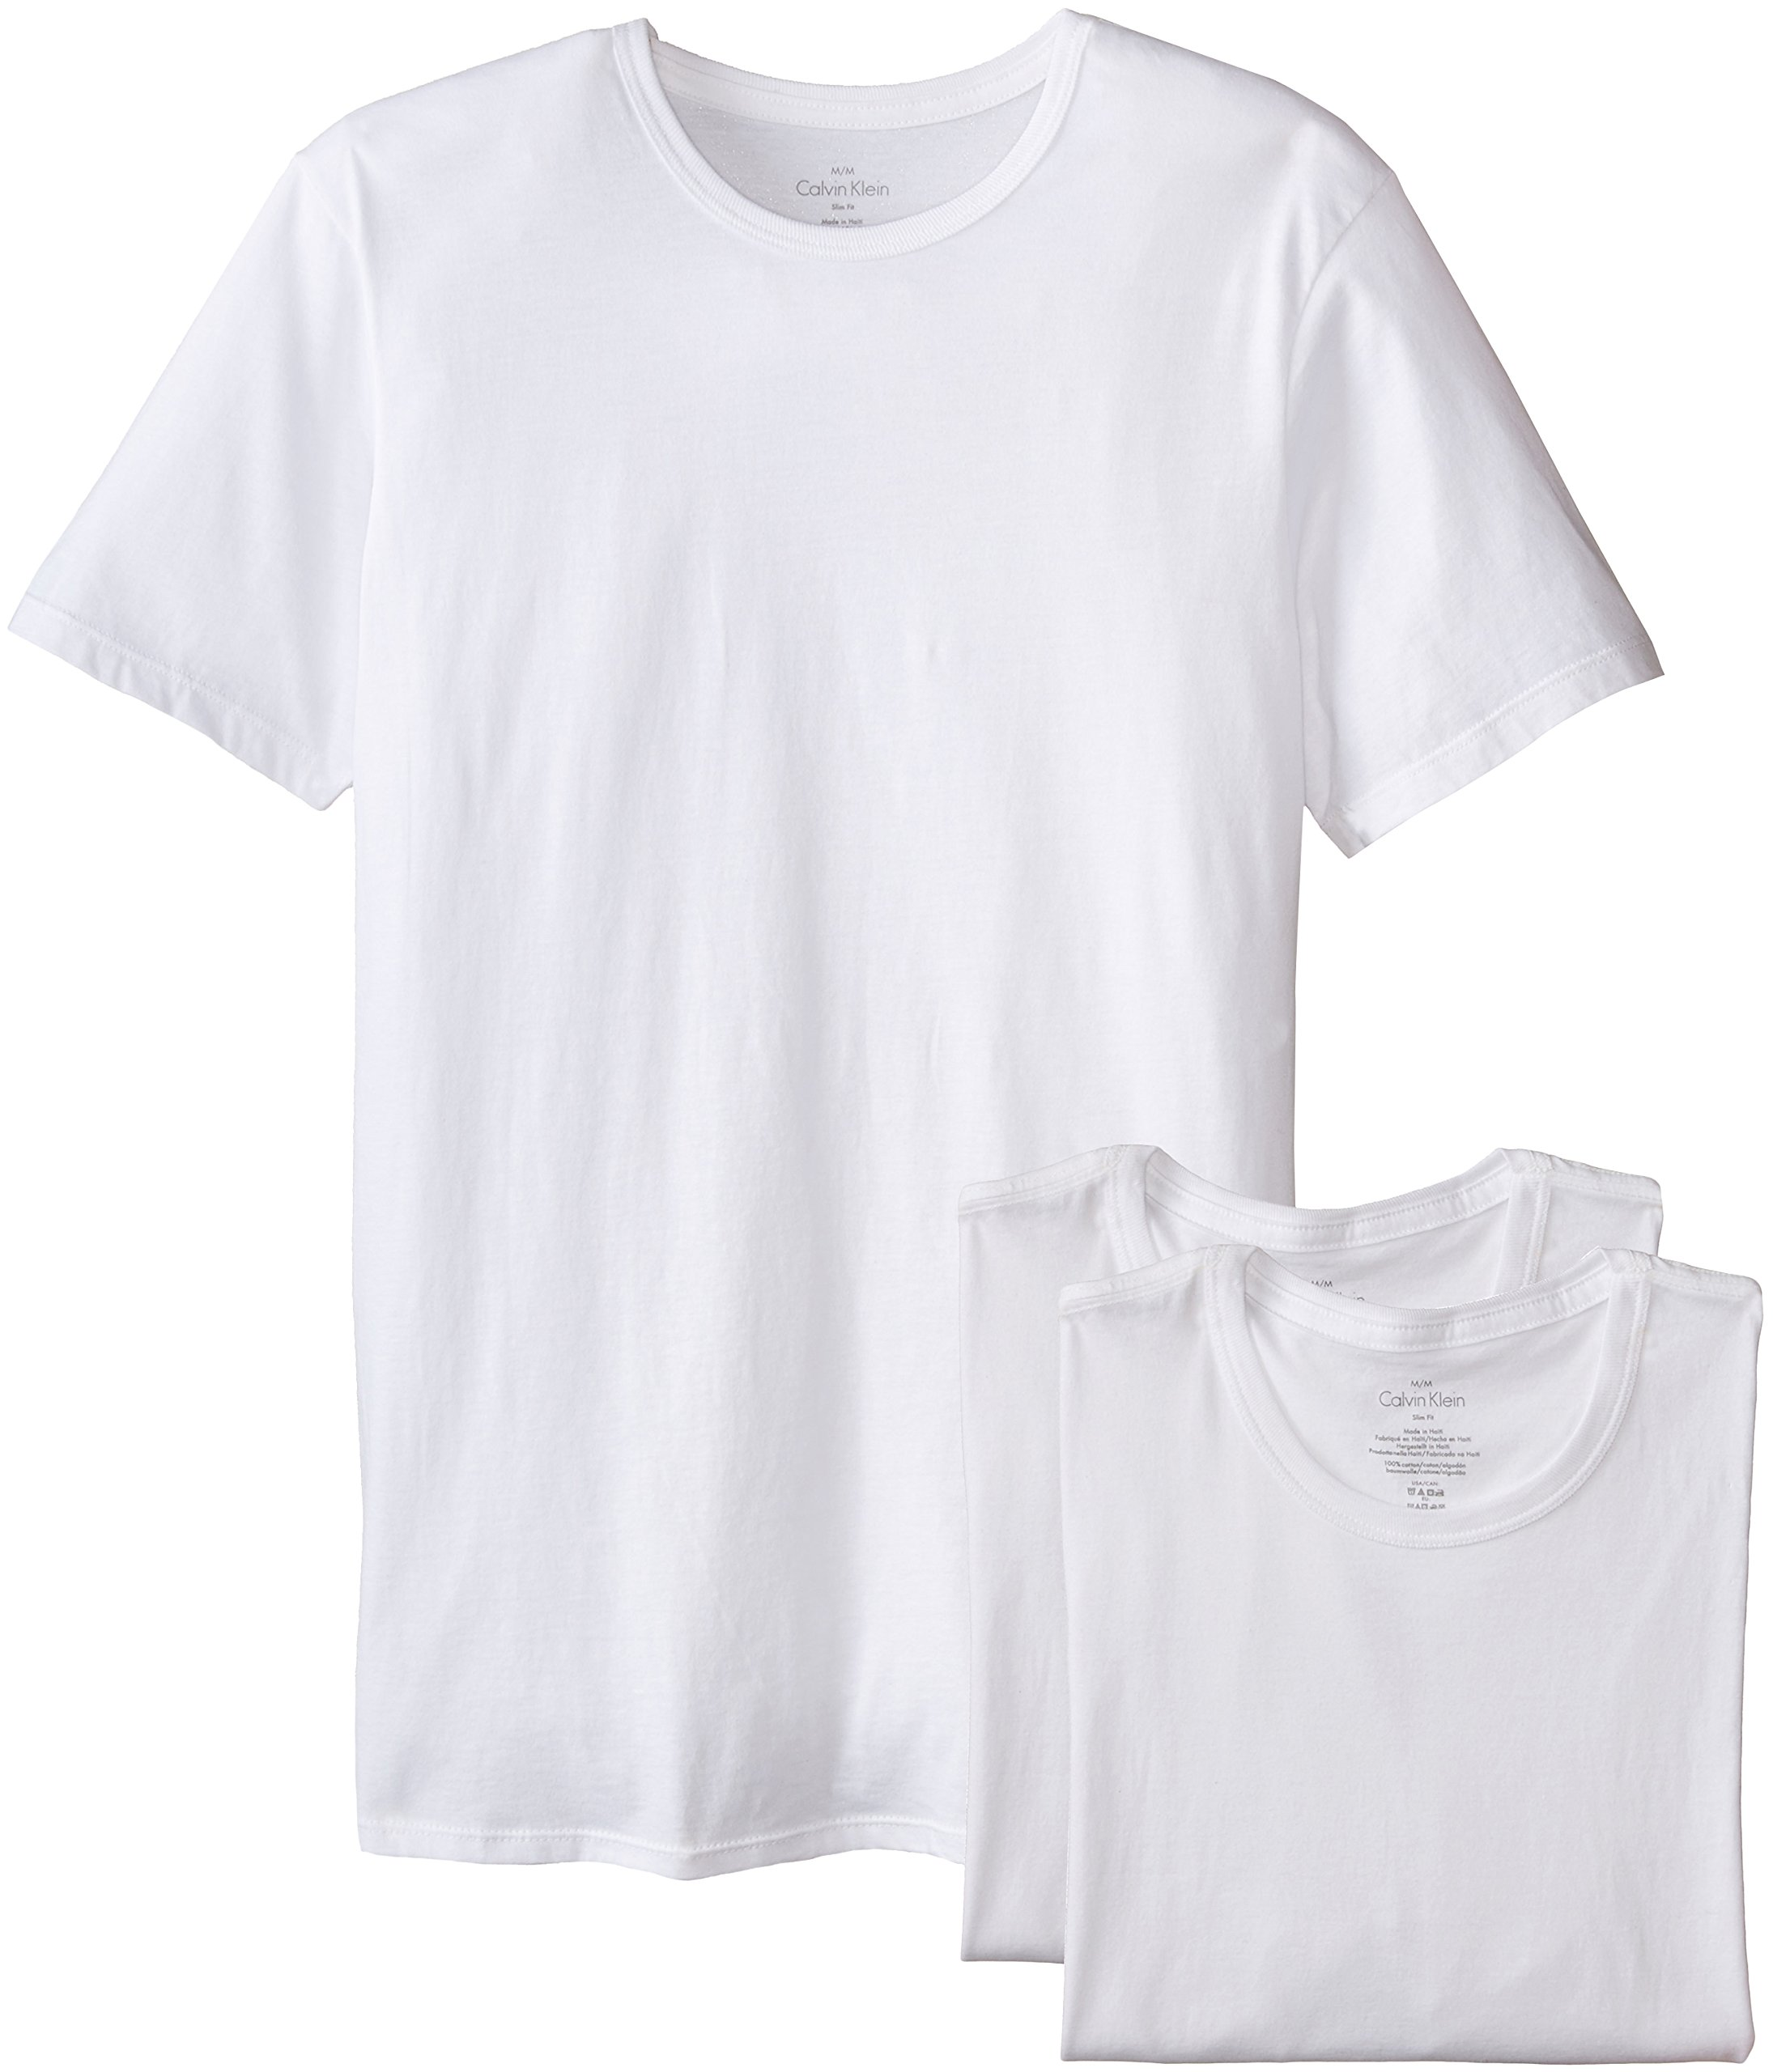 Calvin Klein Men's 3 Pack Cotton Classics Slim Fit Crew Neck T-Shirt, White, Large